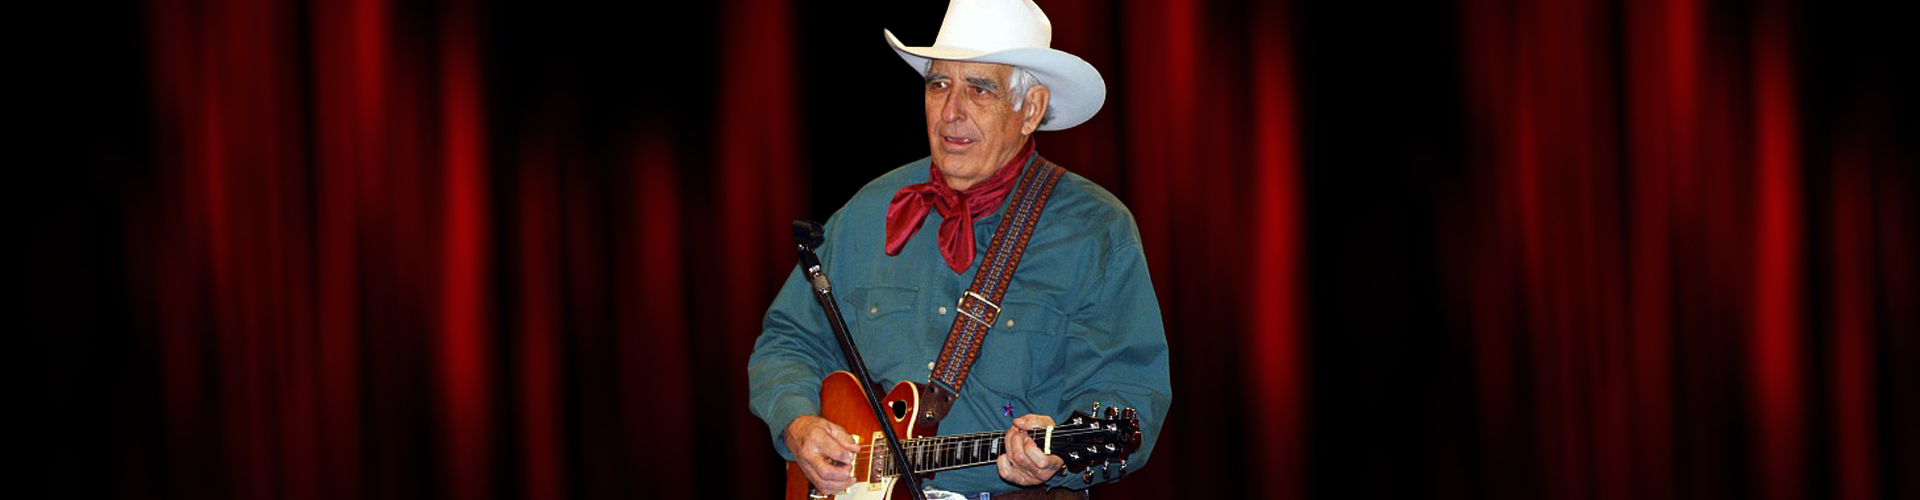 Tommy allsup with guitar on stage